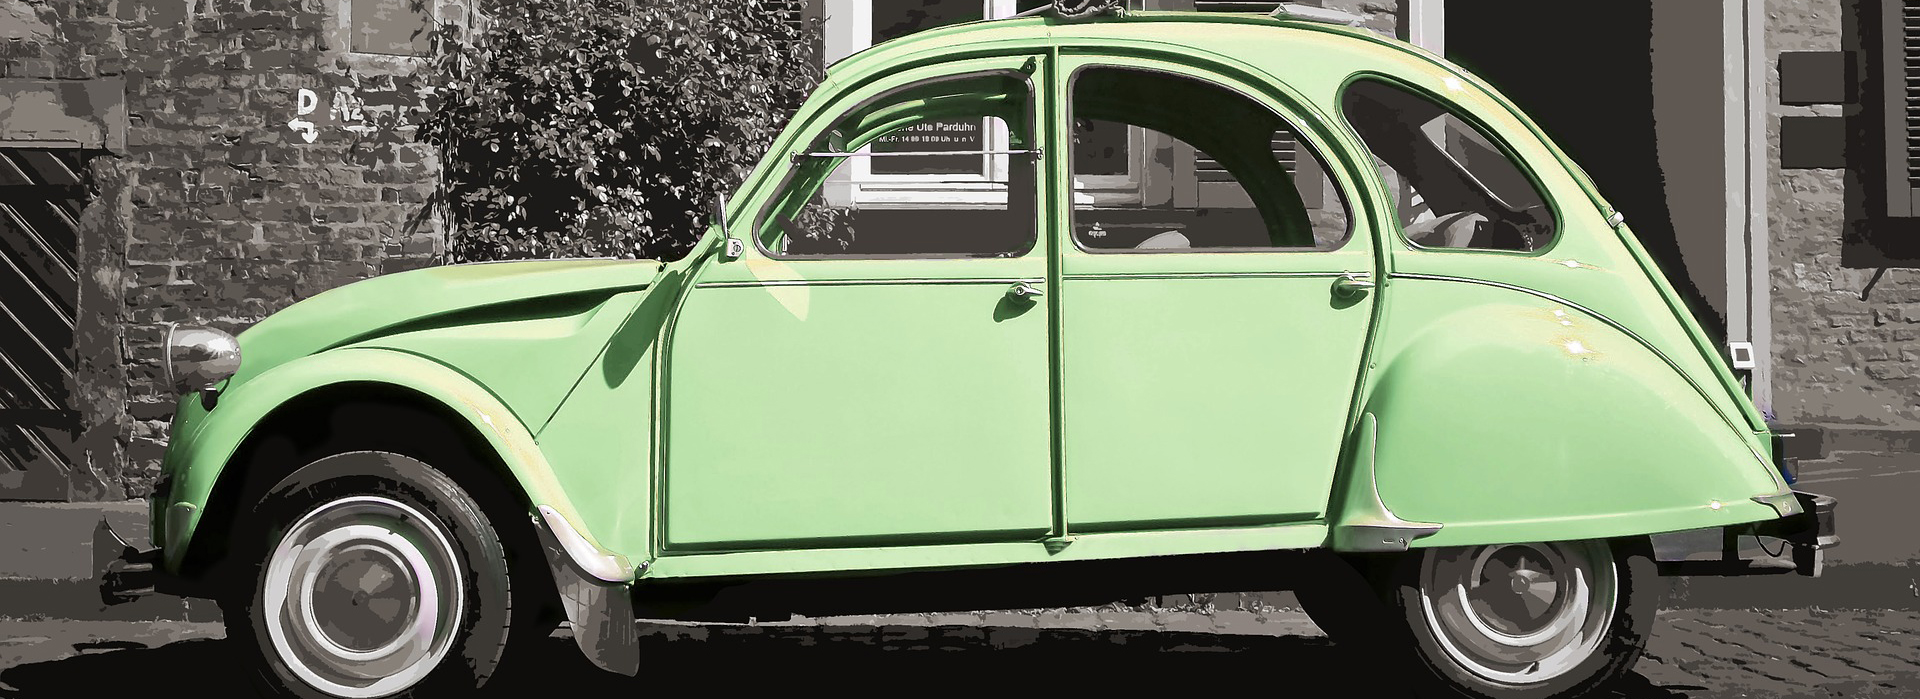 Green Classic Beetle in Bolingbrook | Breast Cancer Car Donations